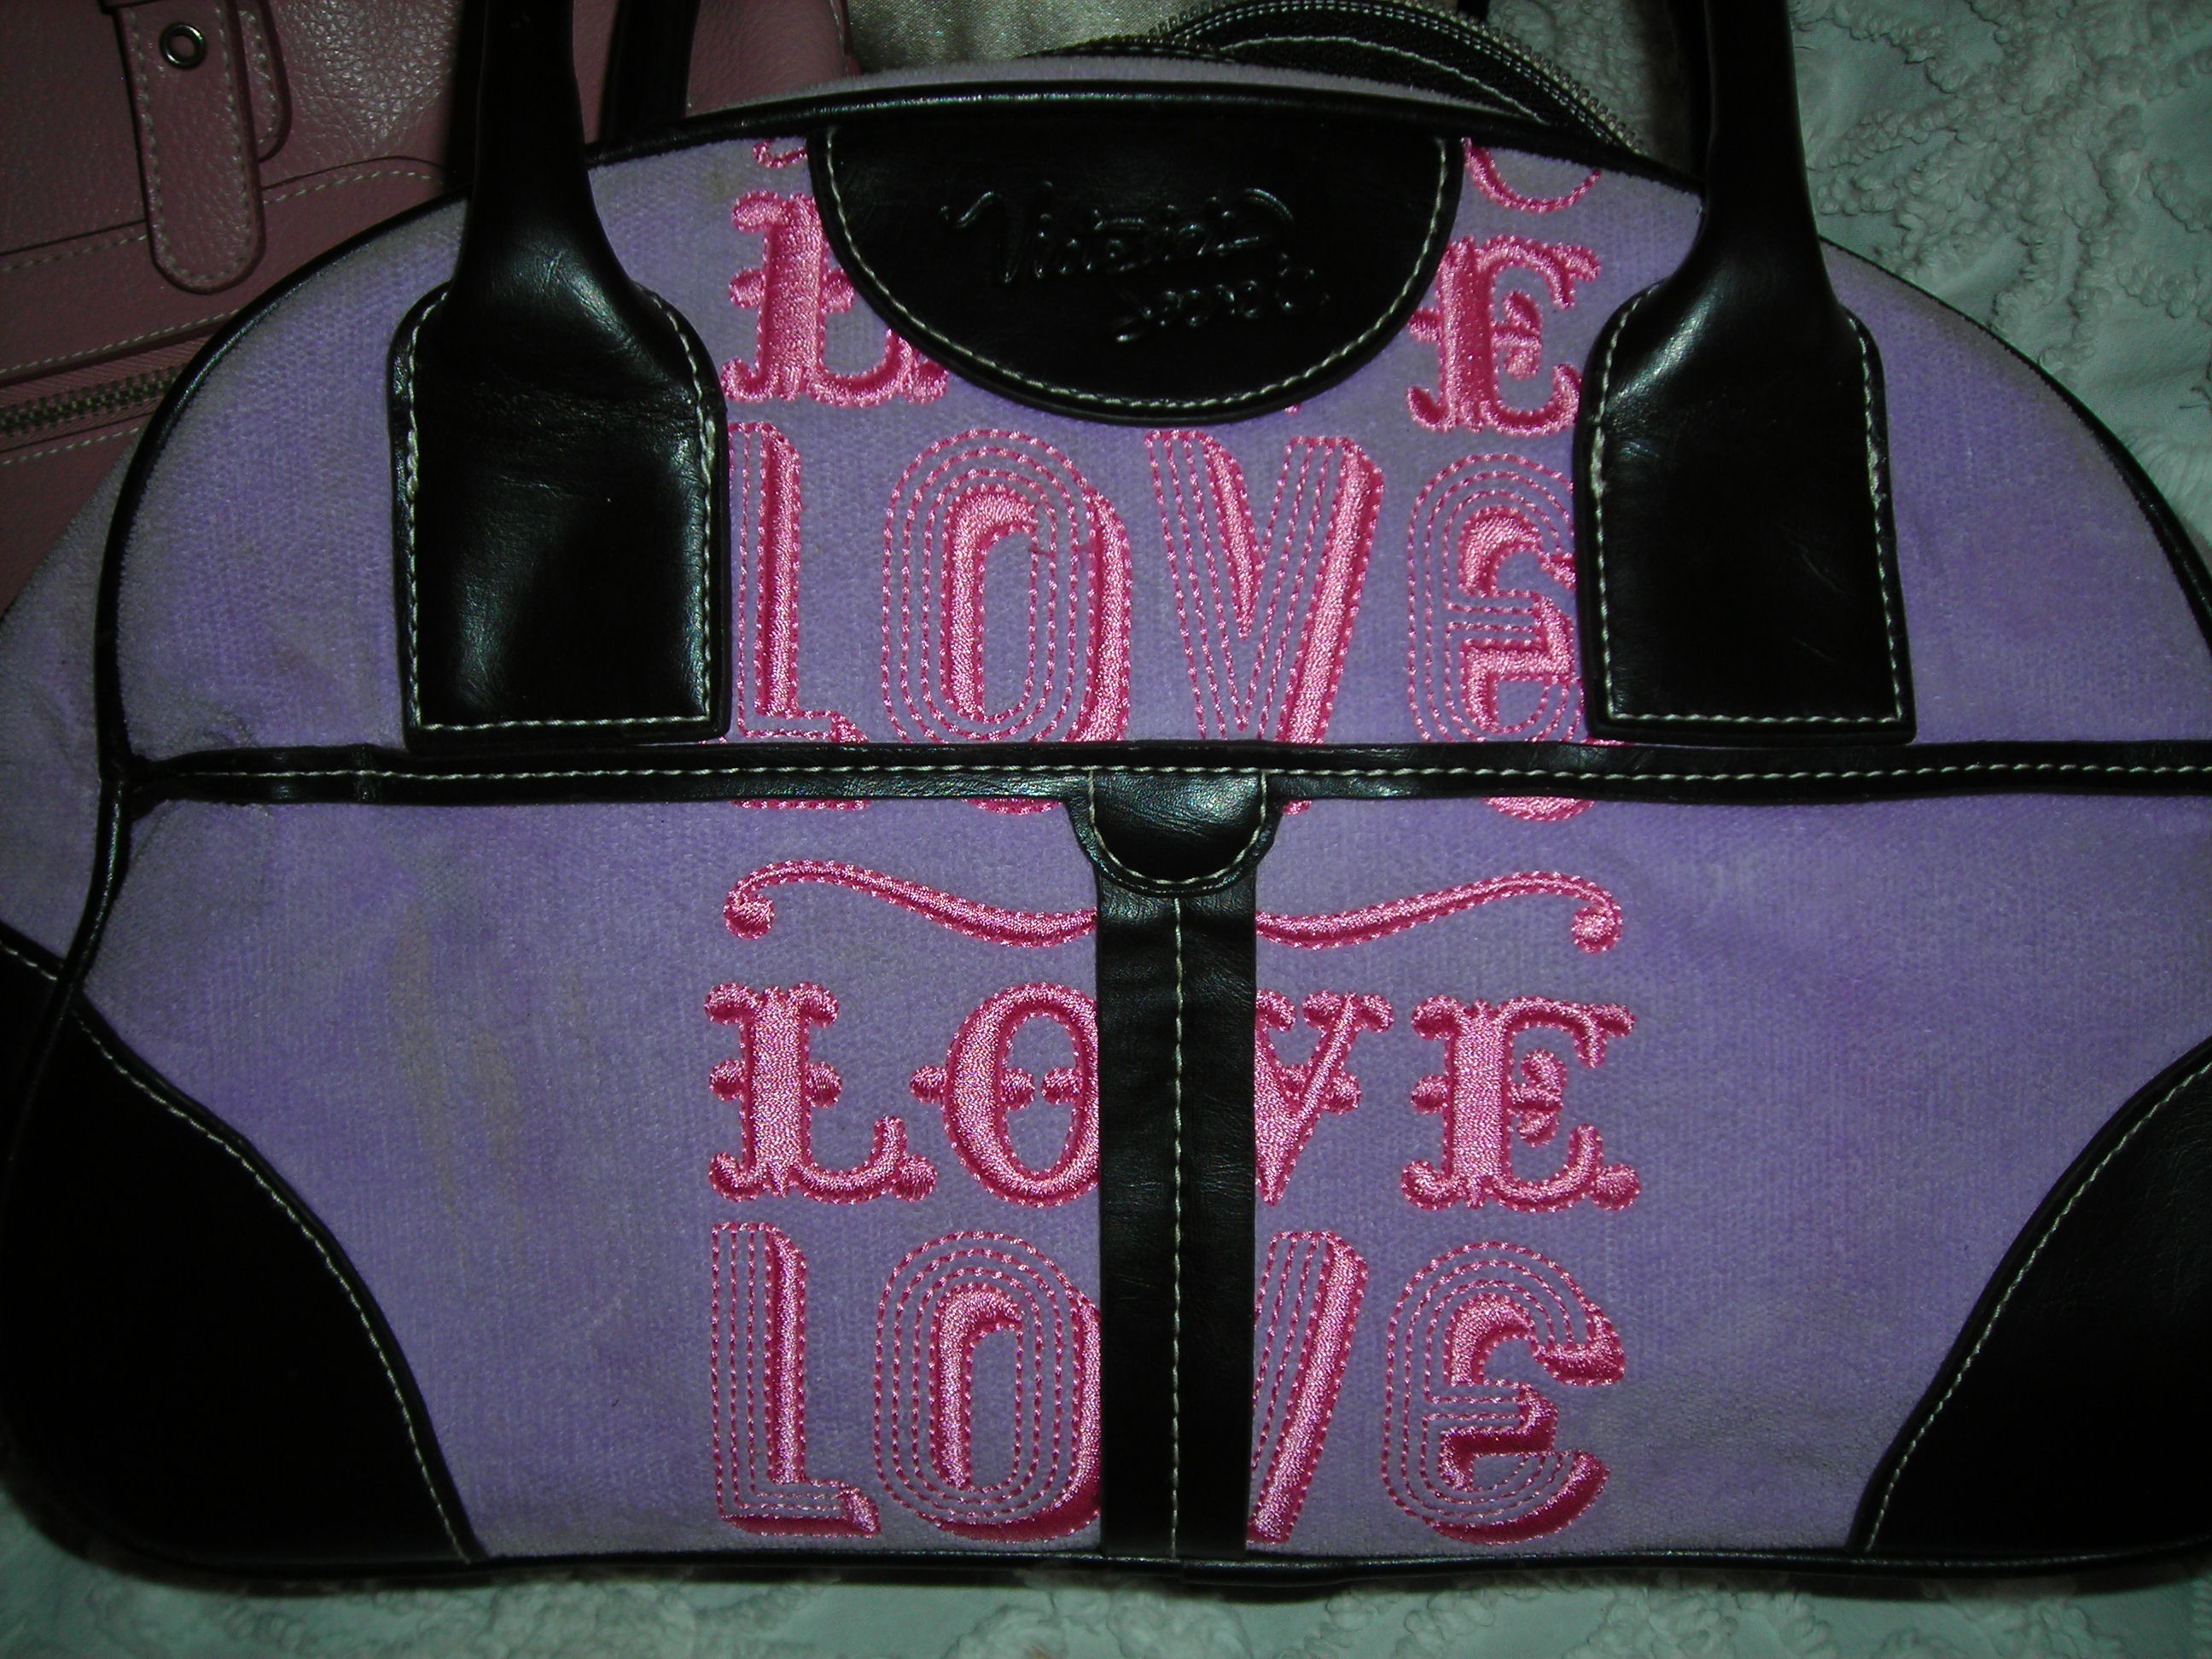 50 cent victoria's secret purse ... love, love, love, just in time for valentine's!